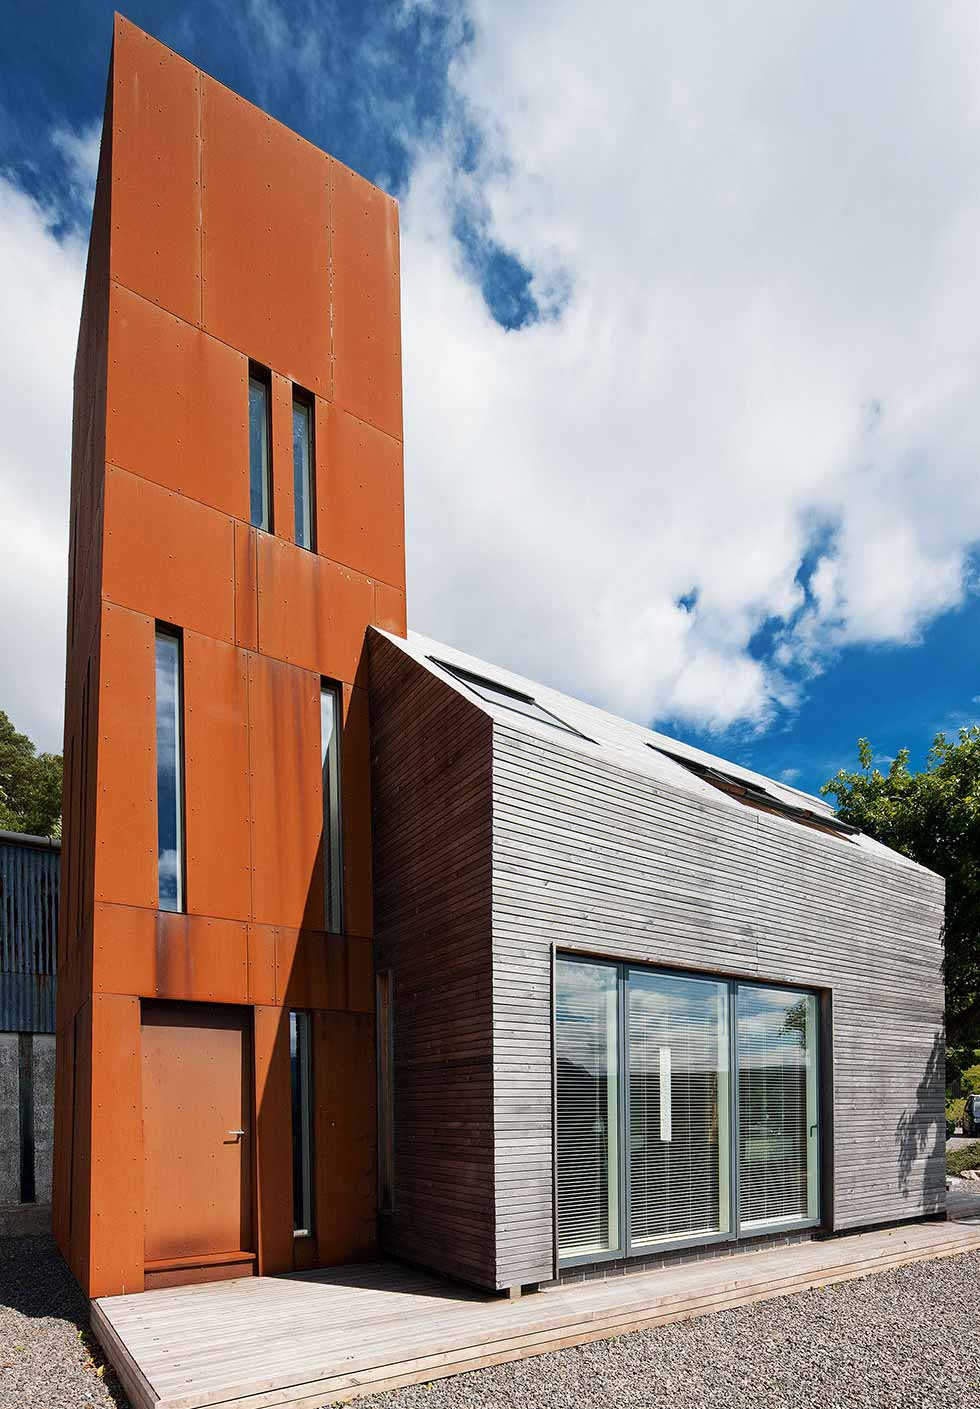 Part of the extension is clad in low-maintenance weathering steel